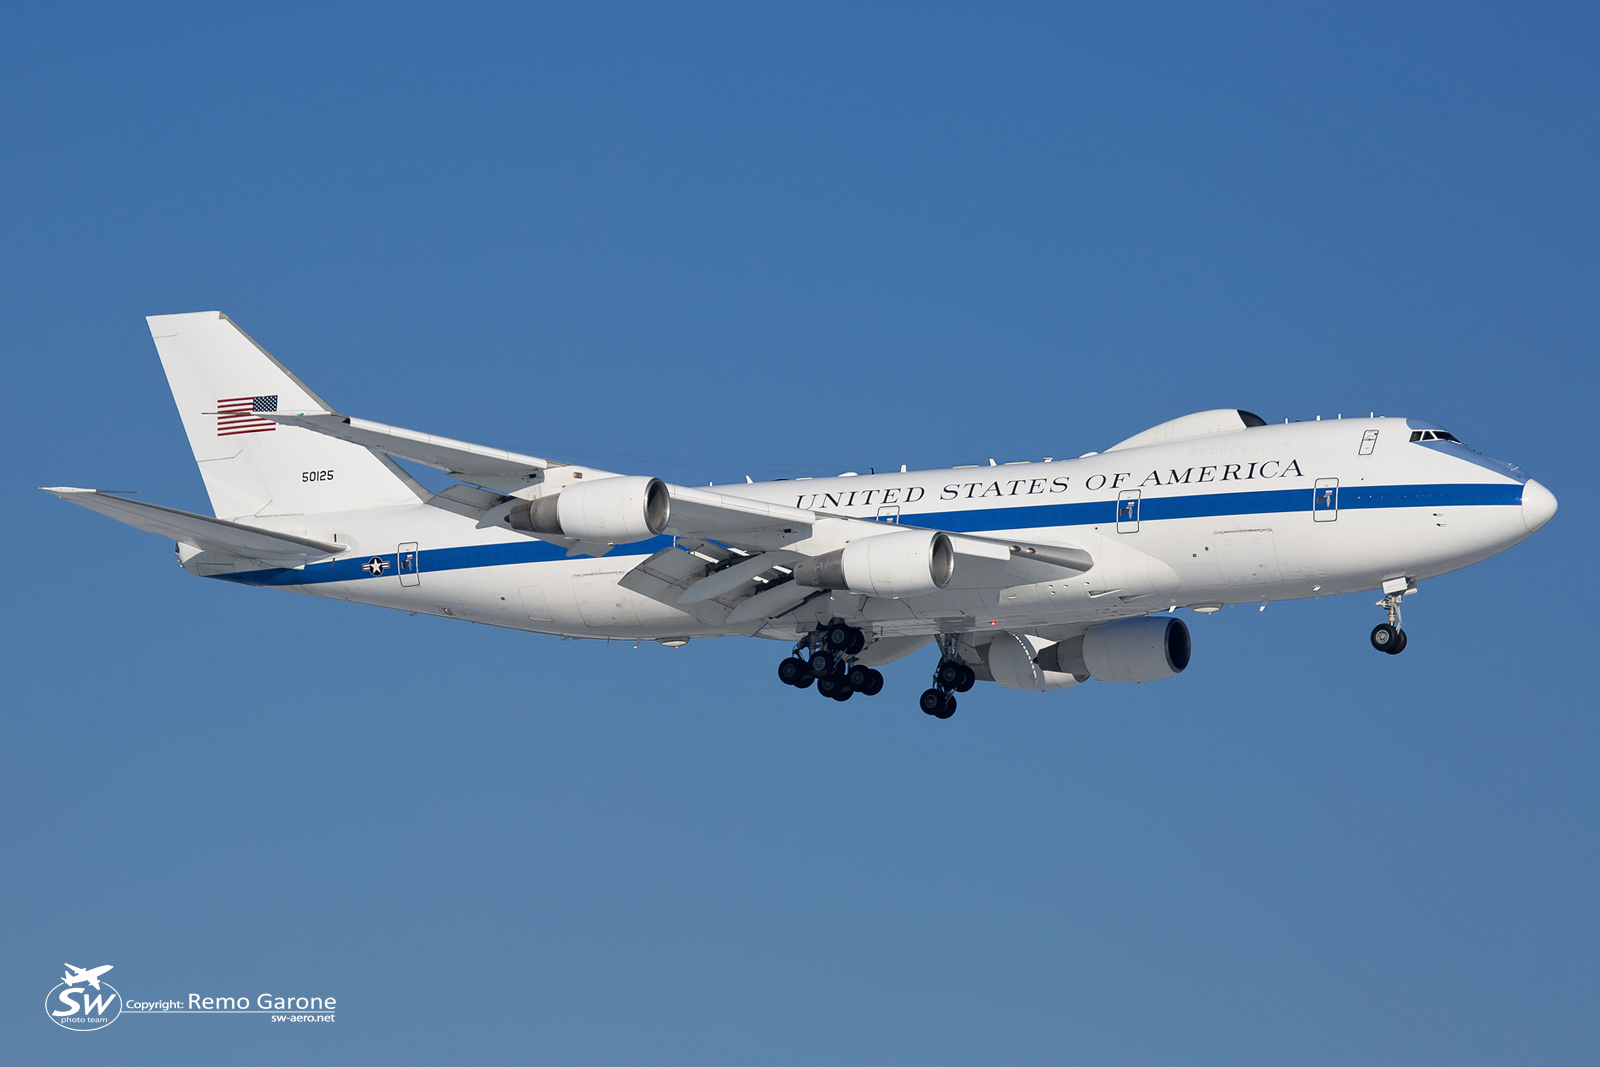 Boeing E-4B US Air Force - WEF 2016 - 25 Janvier 2016